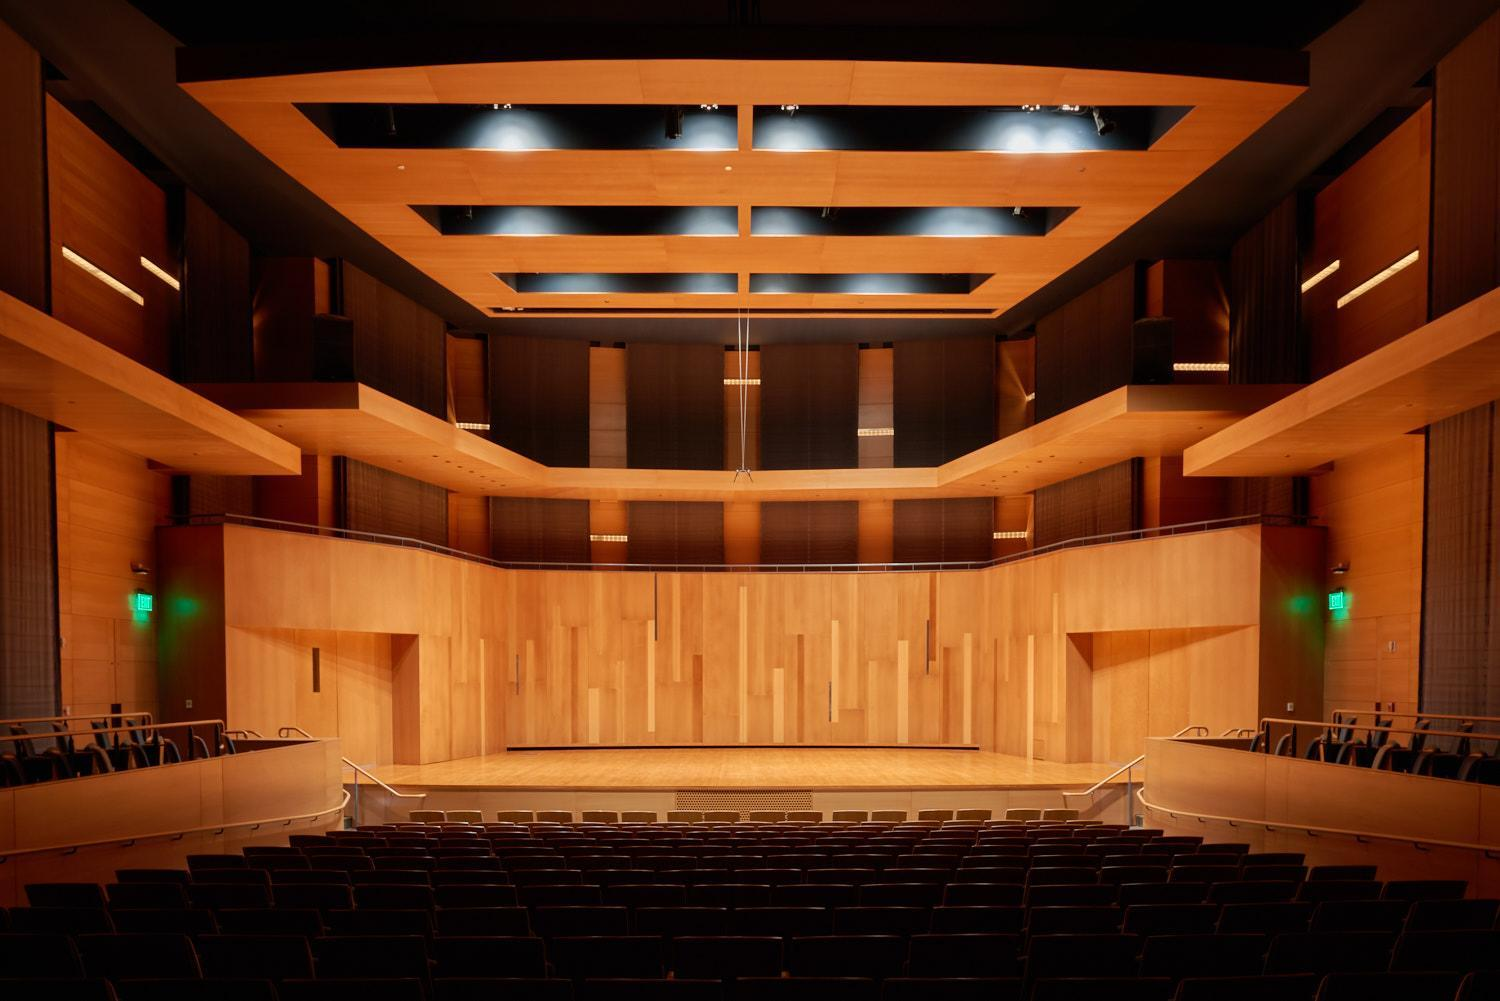 Russell/Wanlass Performance Hall